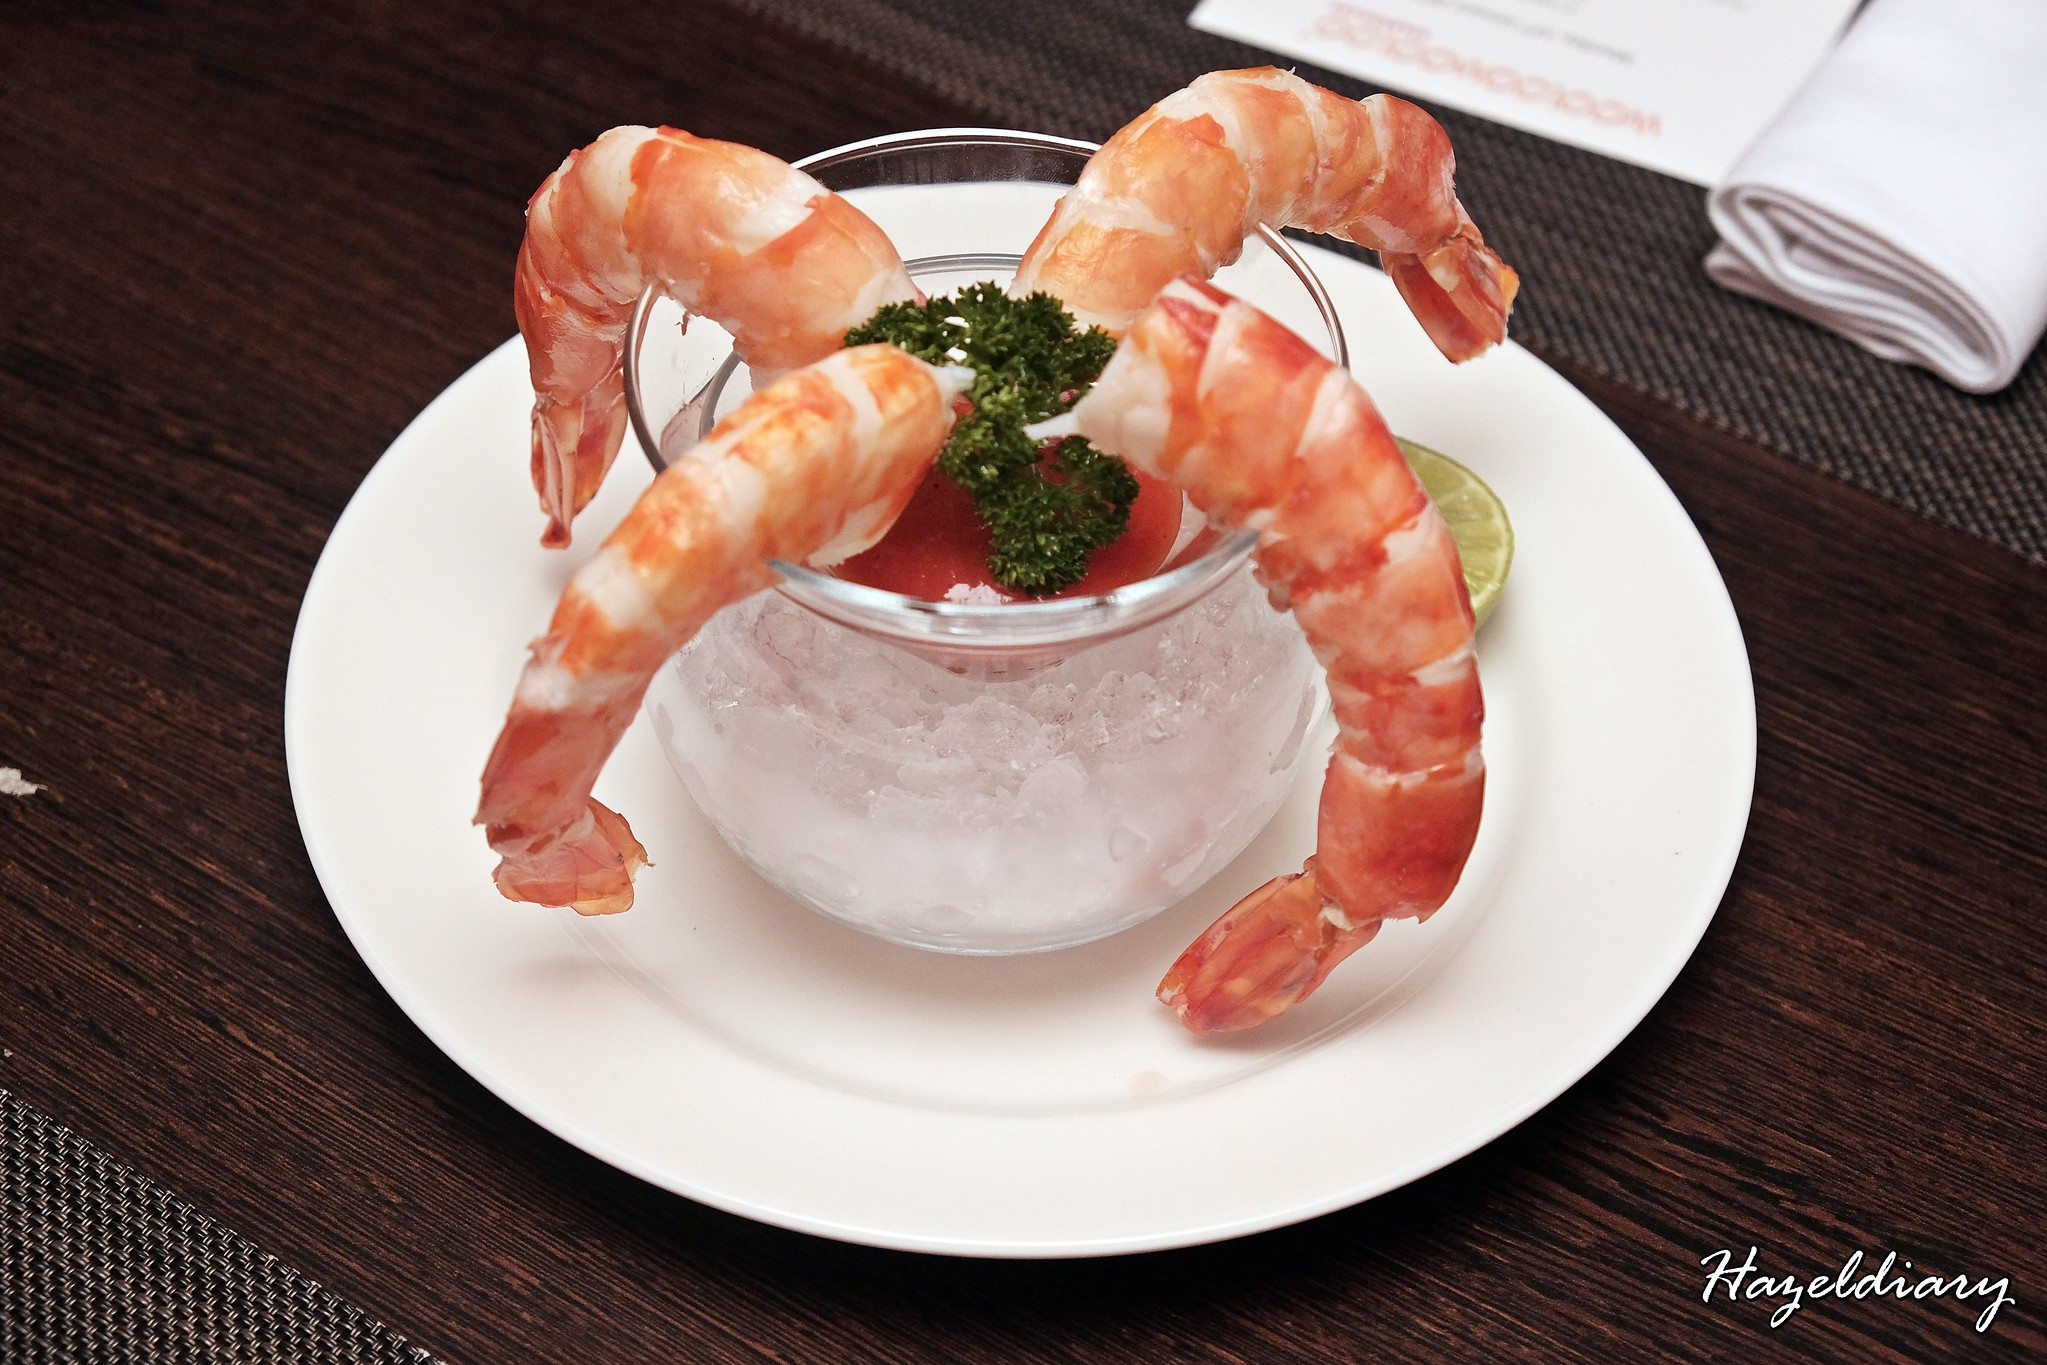 wooloomooloo steakhouse-cocktail prawns